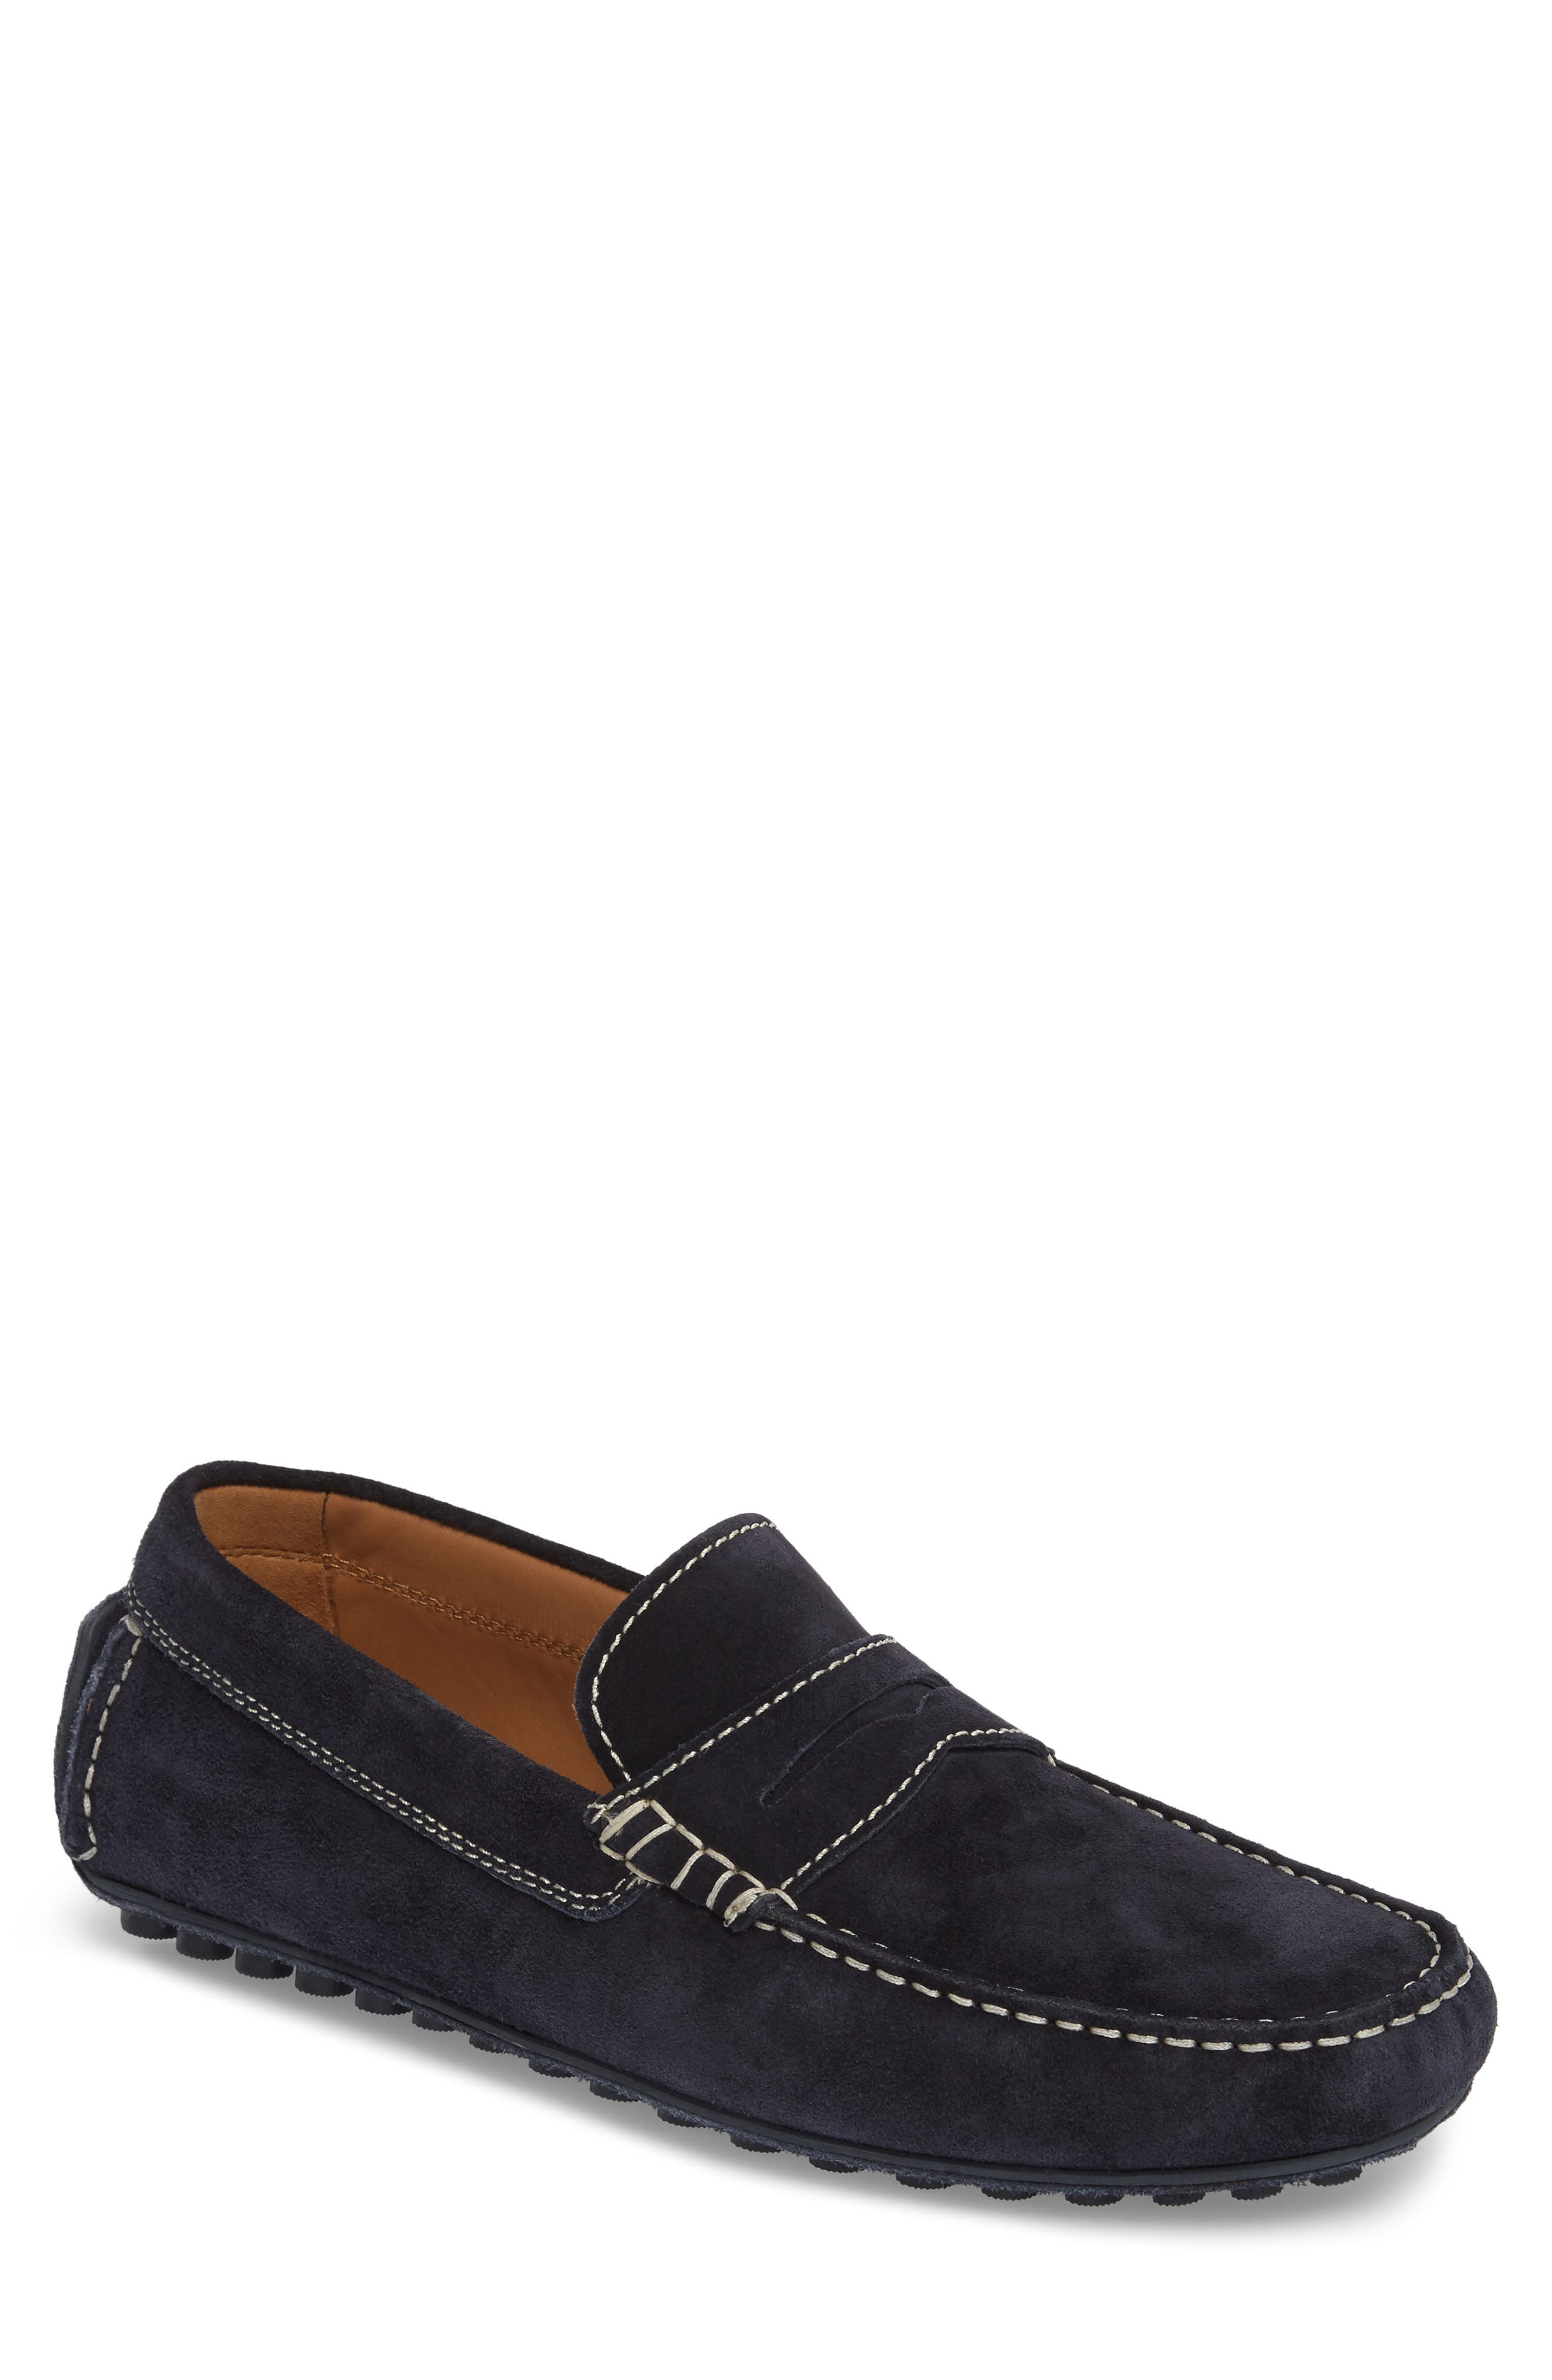 Penny Loafer,                             Main thumbnail 1, color,                             Navy